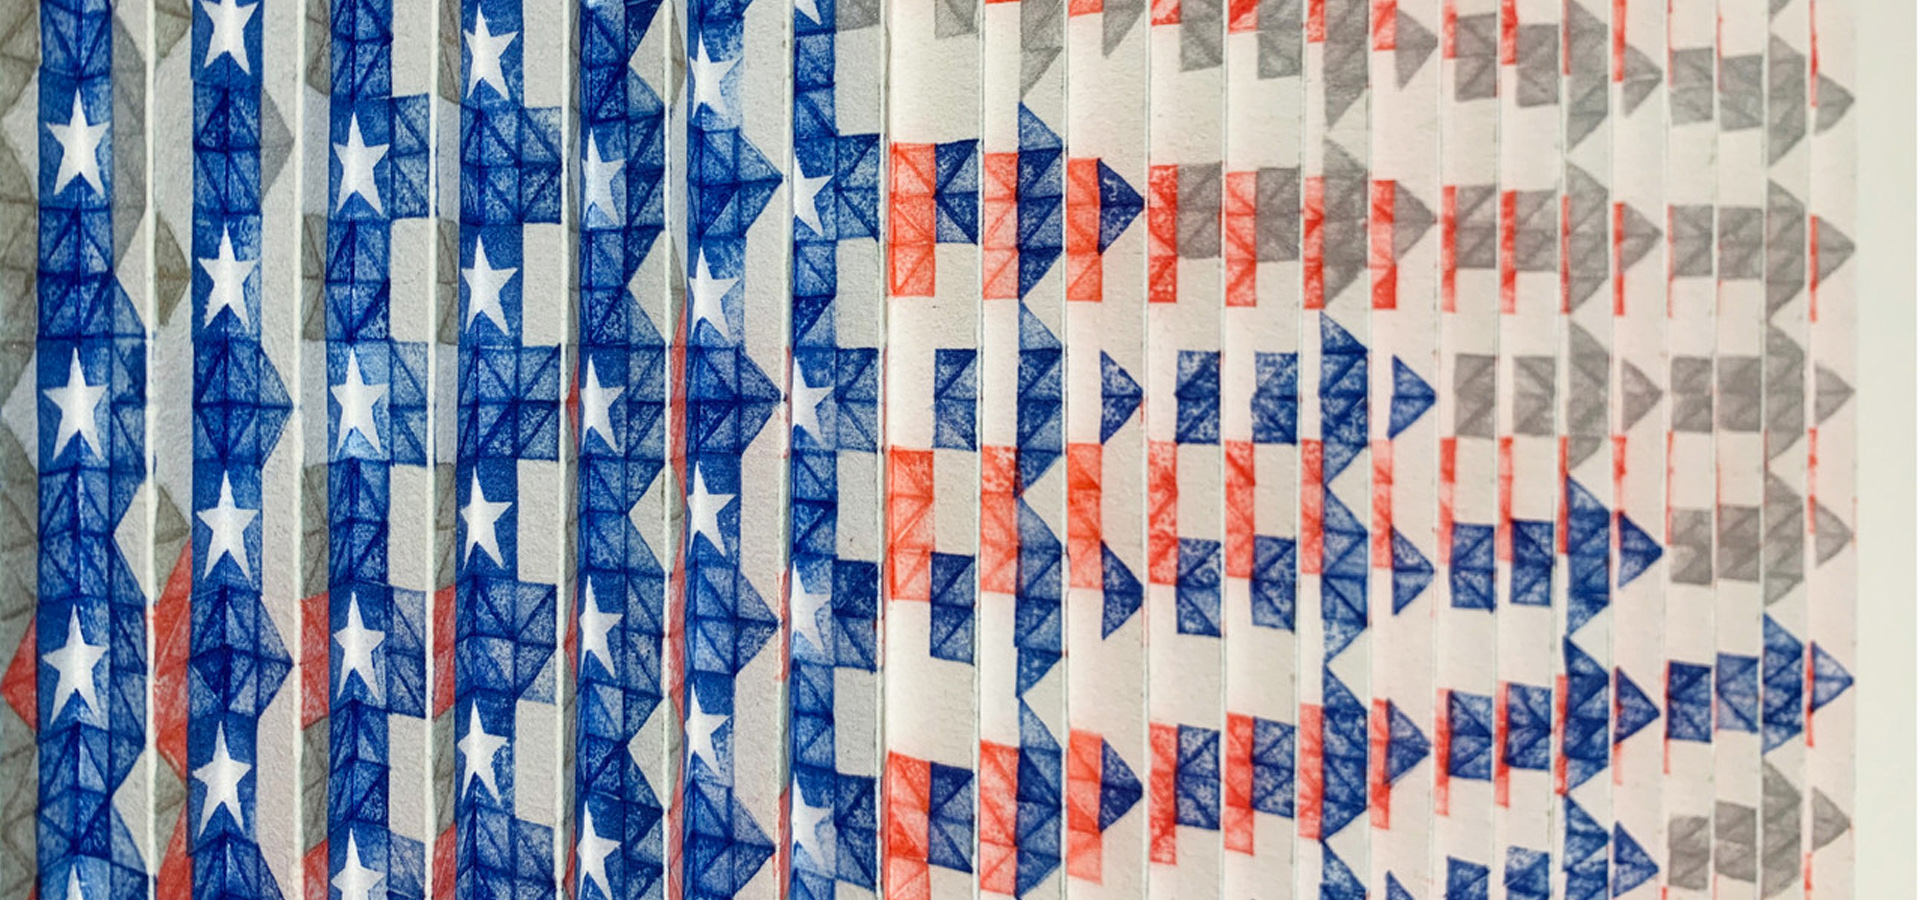 A series of folded and stamped papers that collectively make up the American flag.